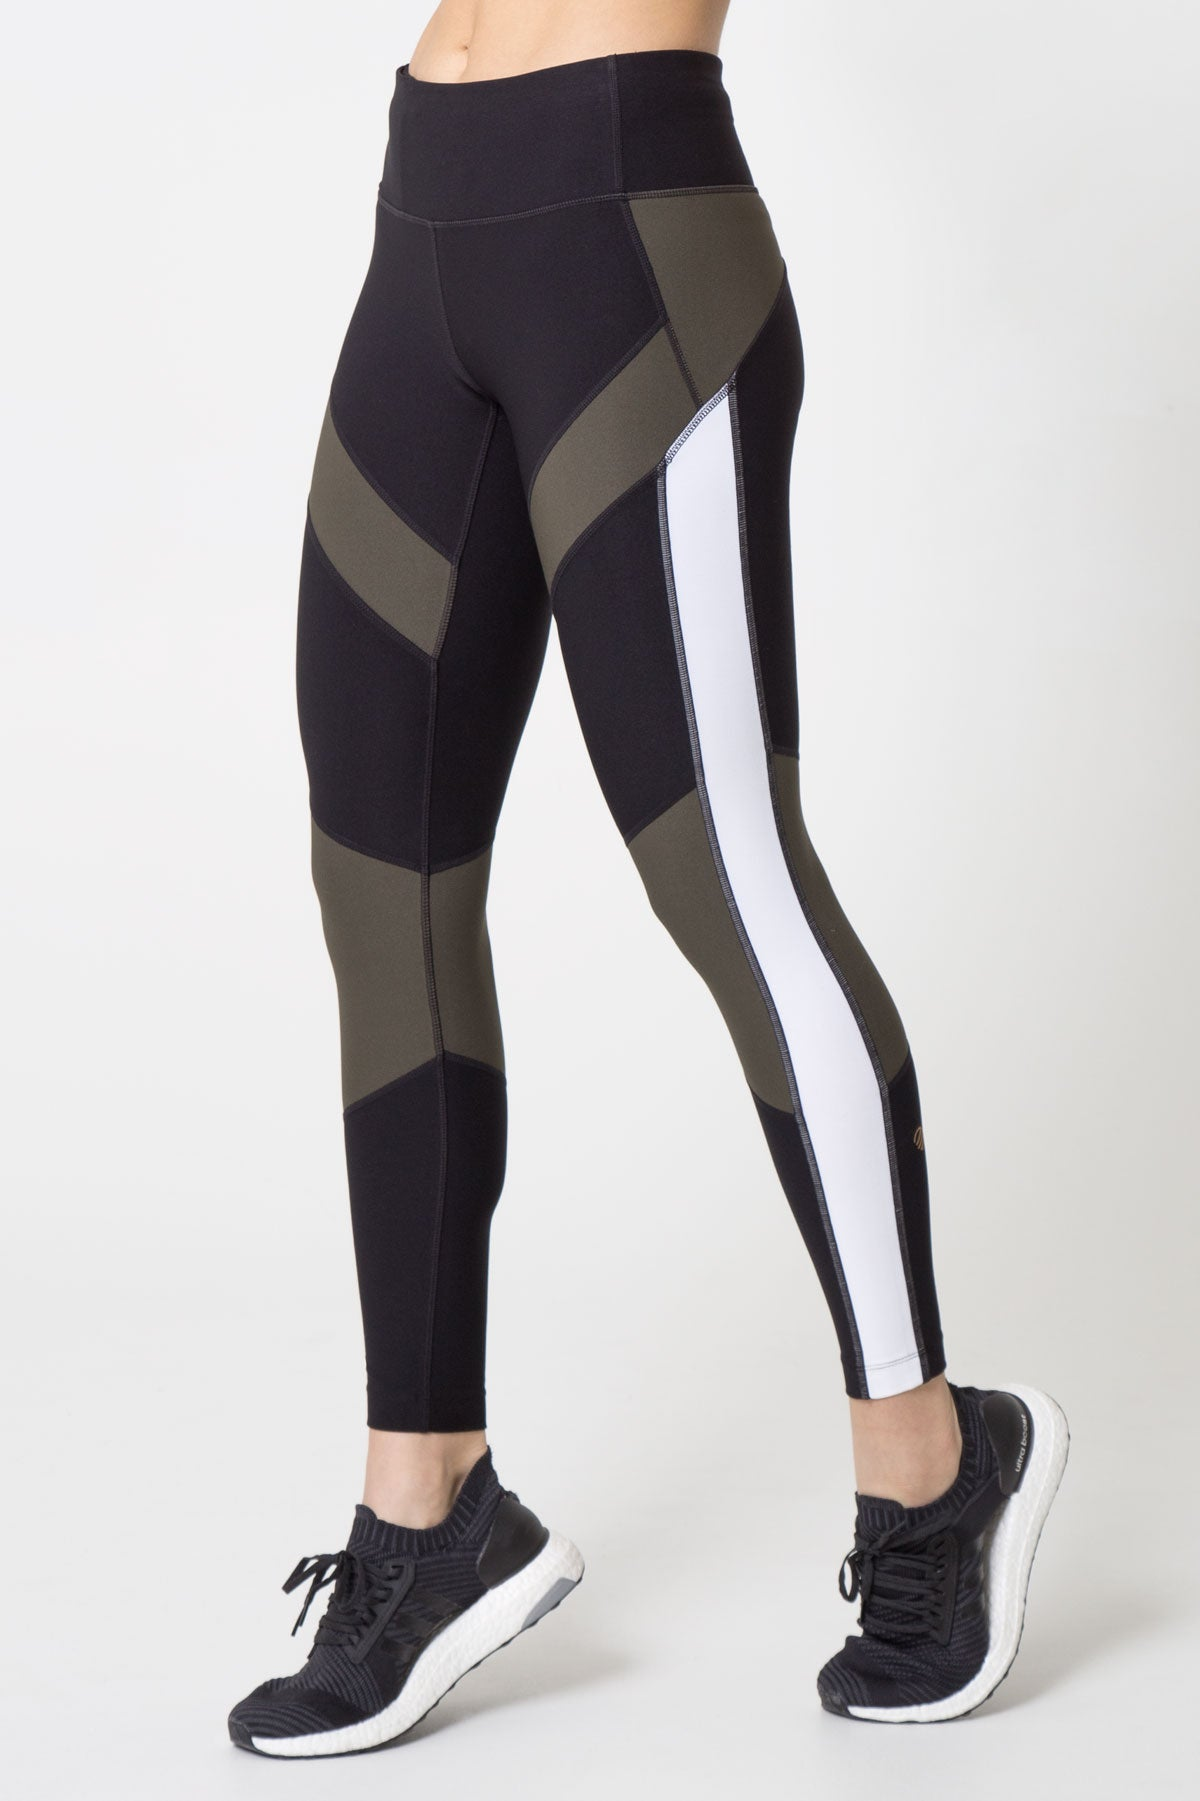 132060d8f8794 Finale 7/8 Color Block Run Legging – MPG Sport USA